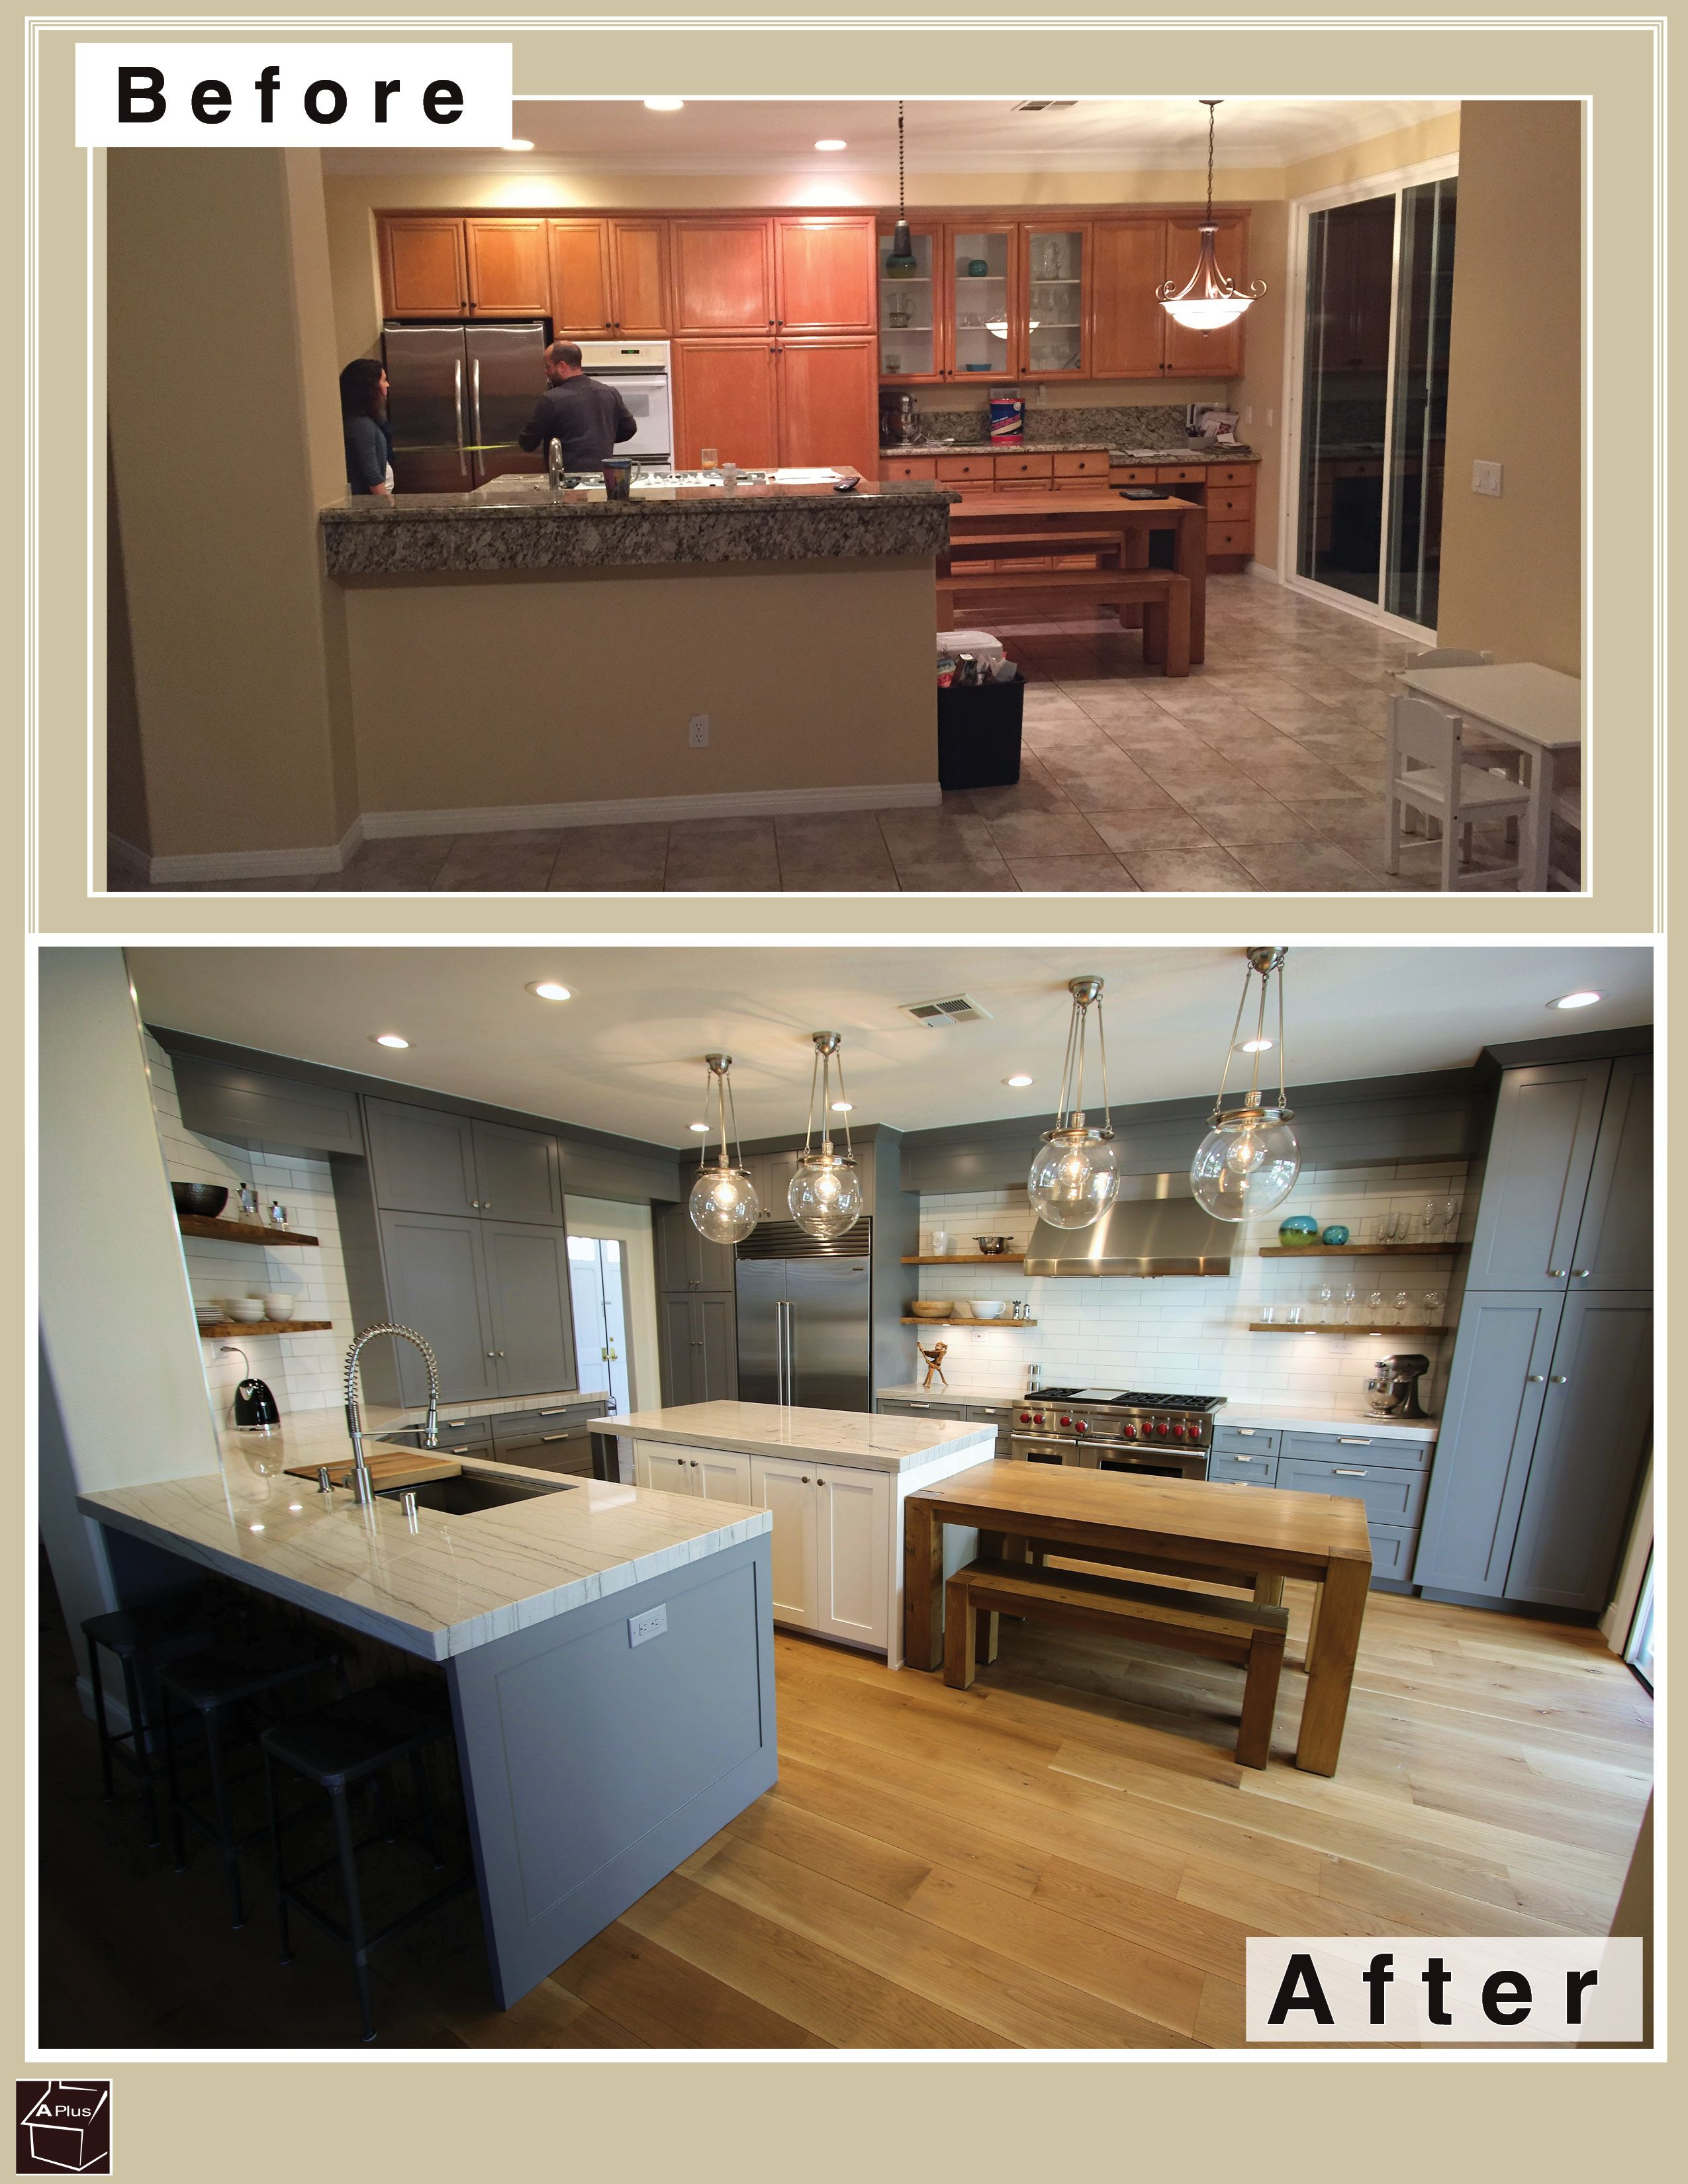 Beau Industrial Style Design Build Kitchen #Remodel With APlus Custom Cabinets  In Rancho Santa Margarita Orange